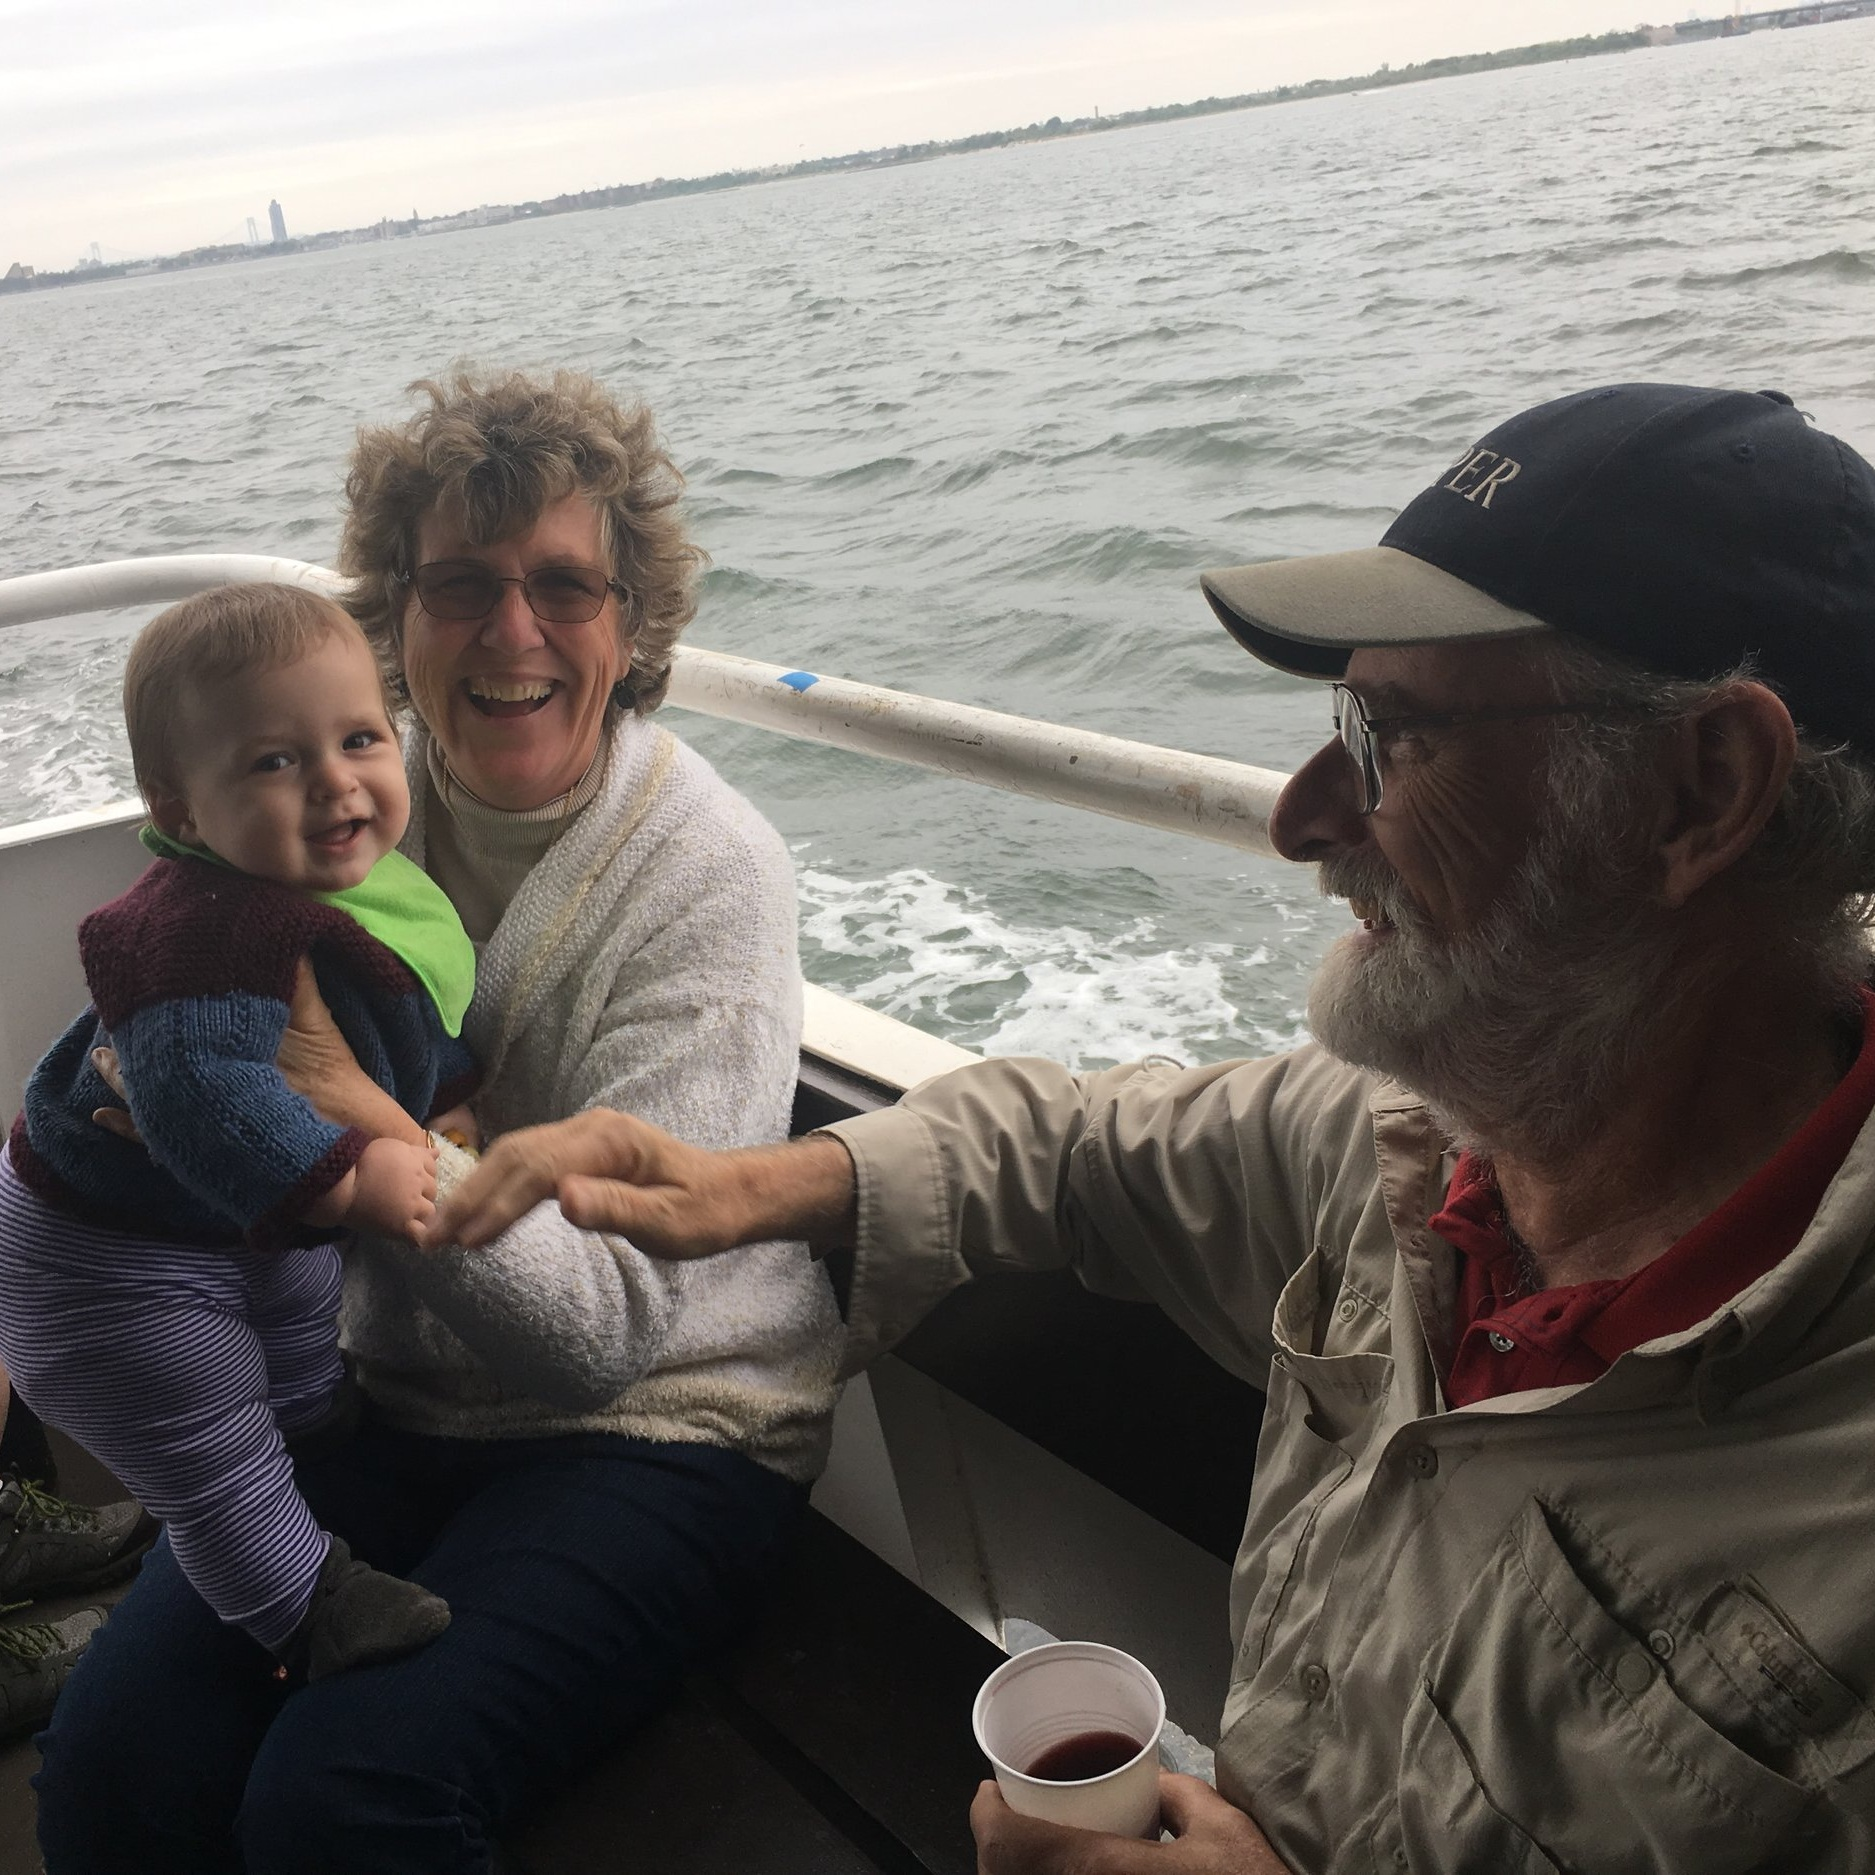 Granny and The Commodore visited NYC -